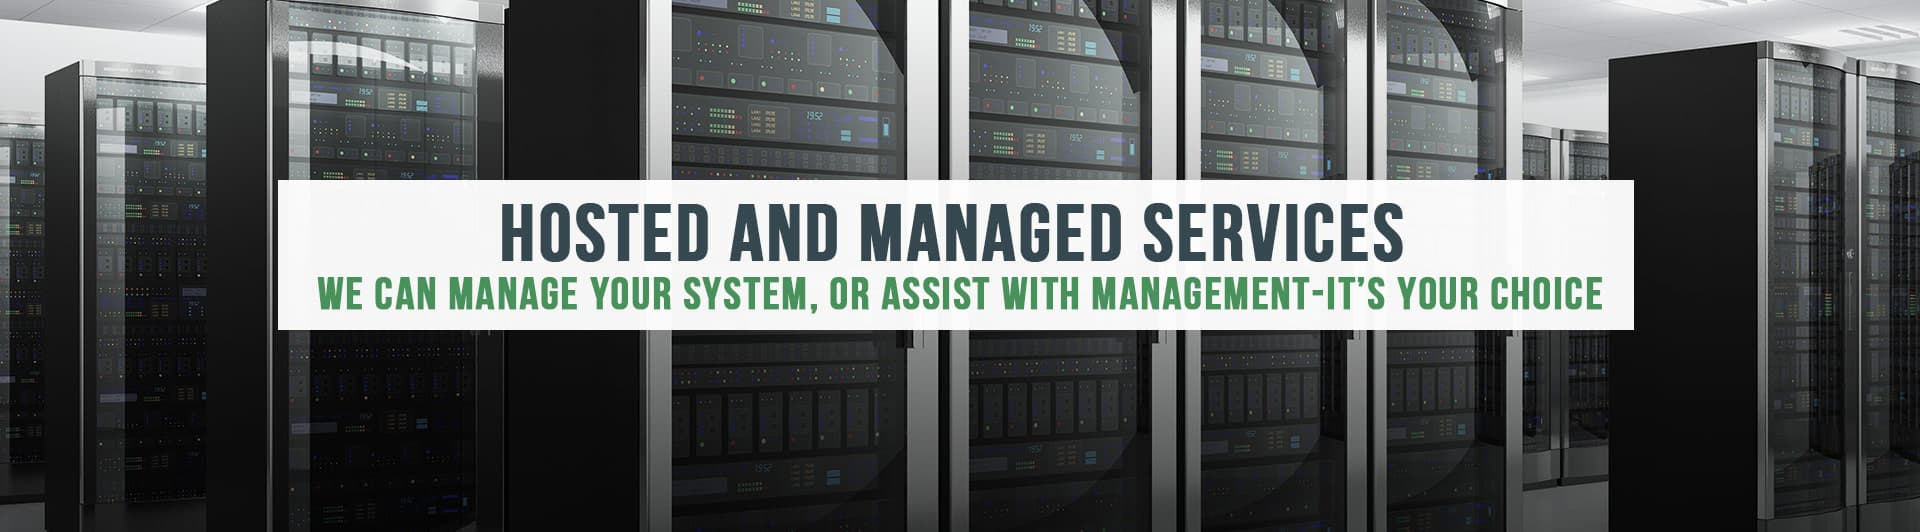 Hosted And Managed Services